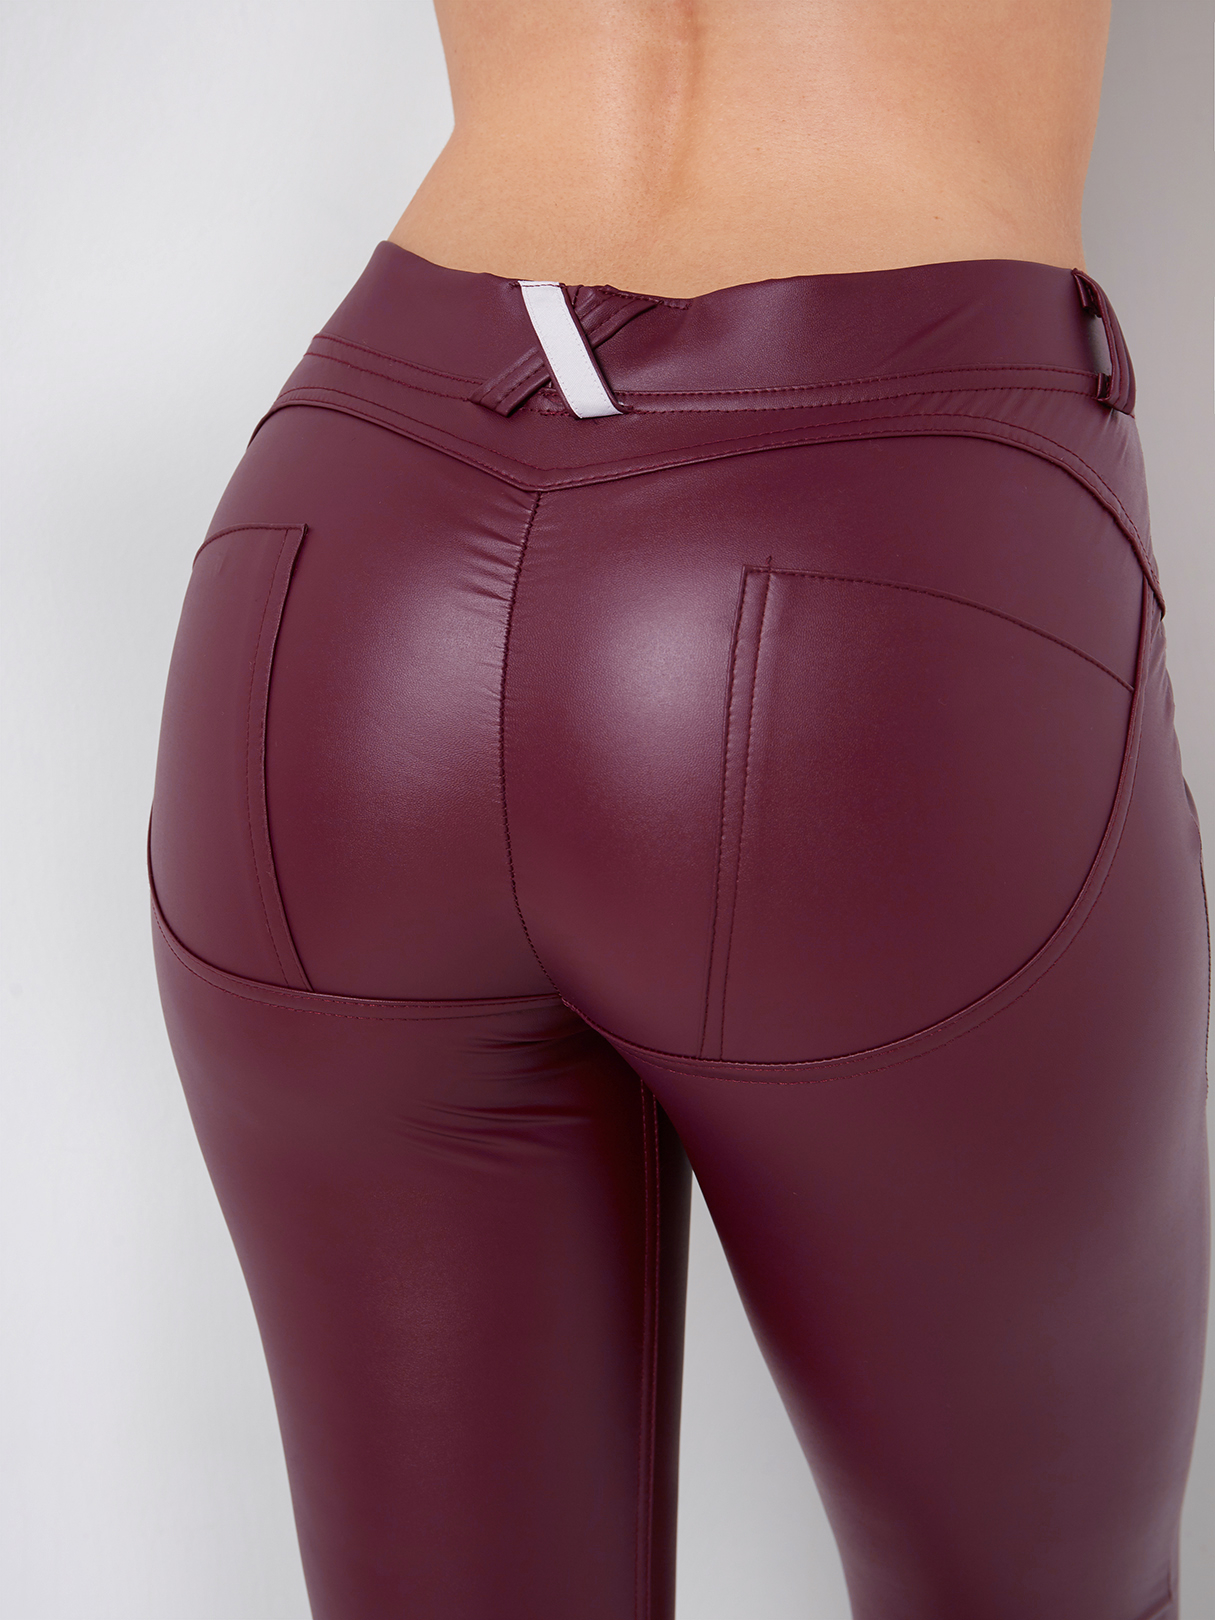 Burgundy Side Pockets Fashion Bodycon Leather Leggings